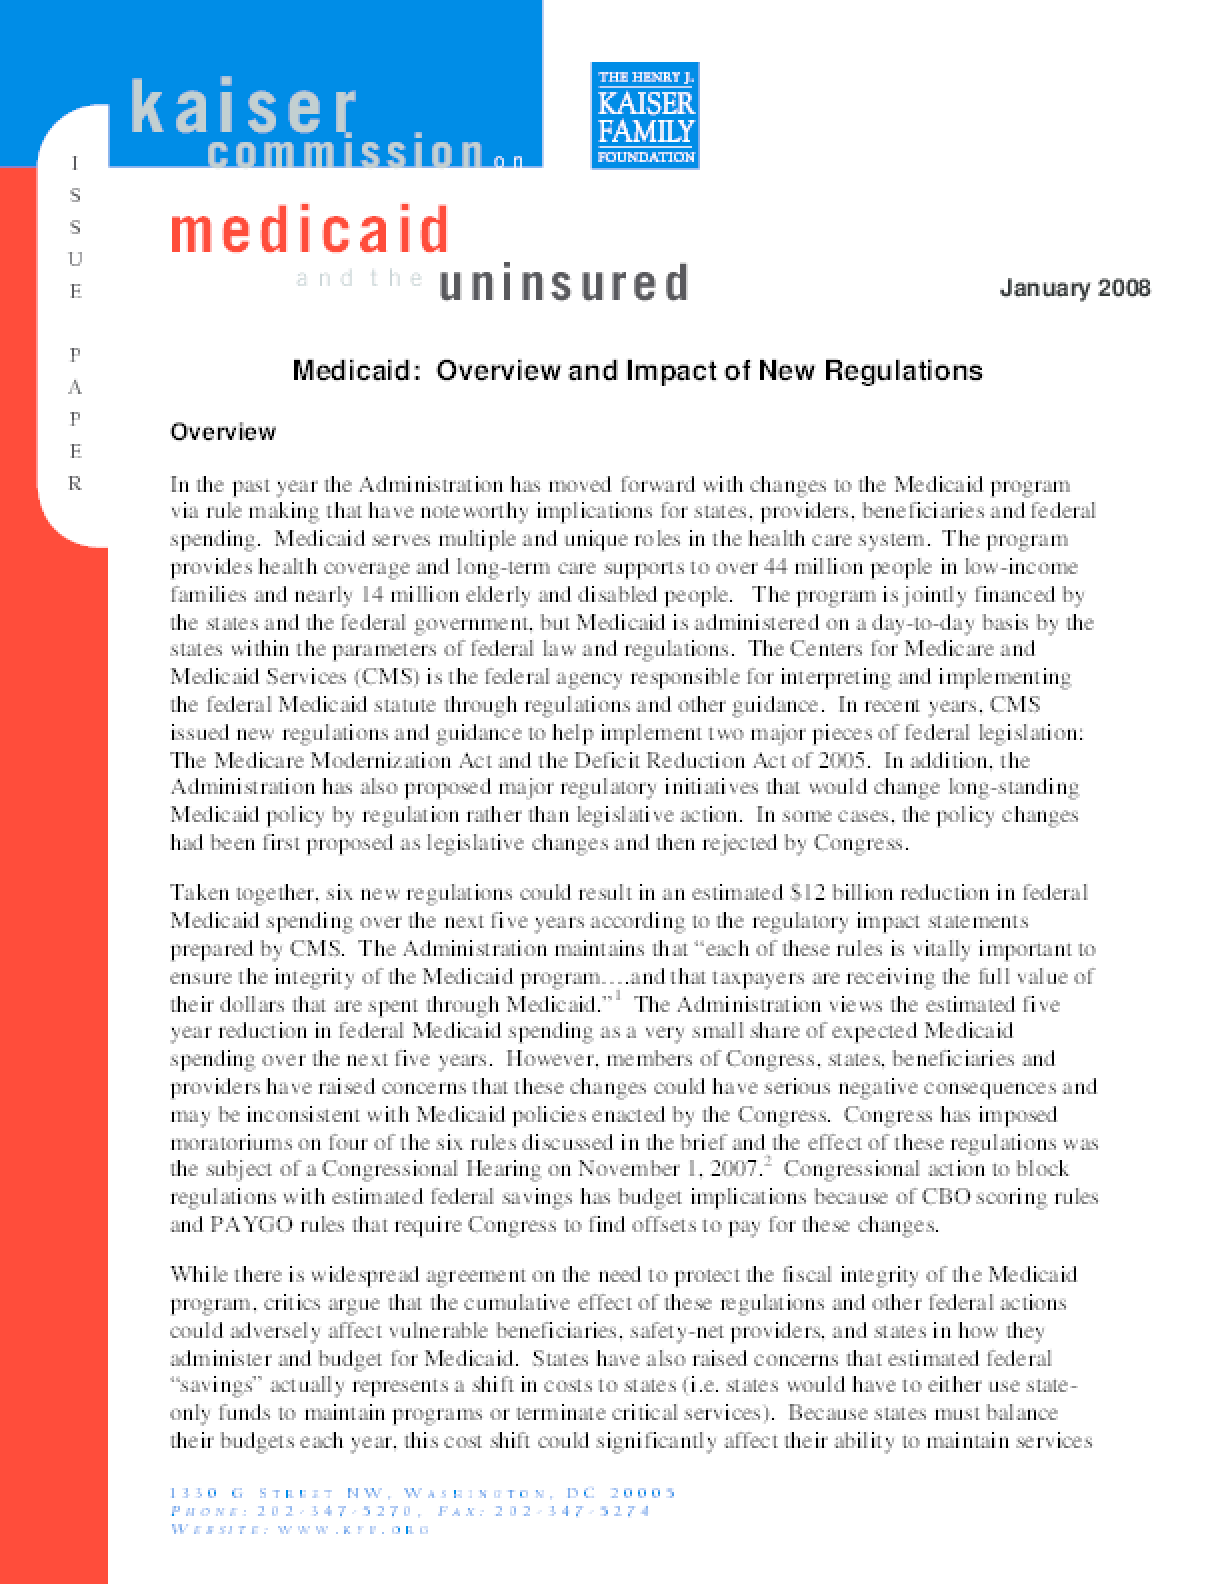 Medicaid: Overview and Impact of New Regulations